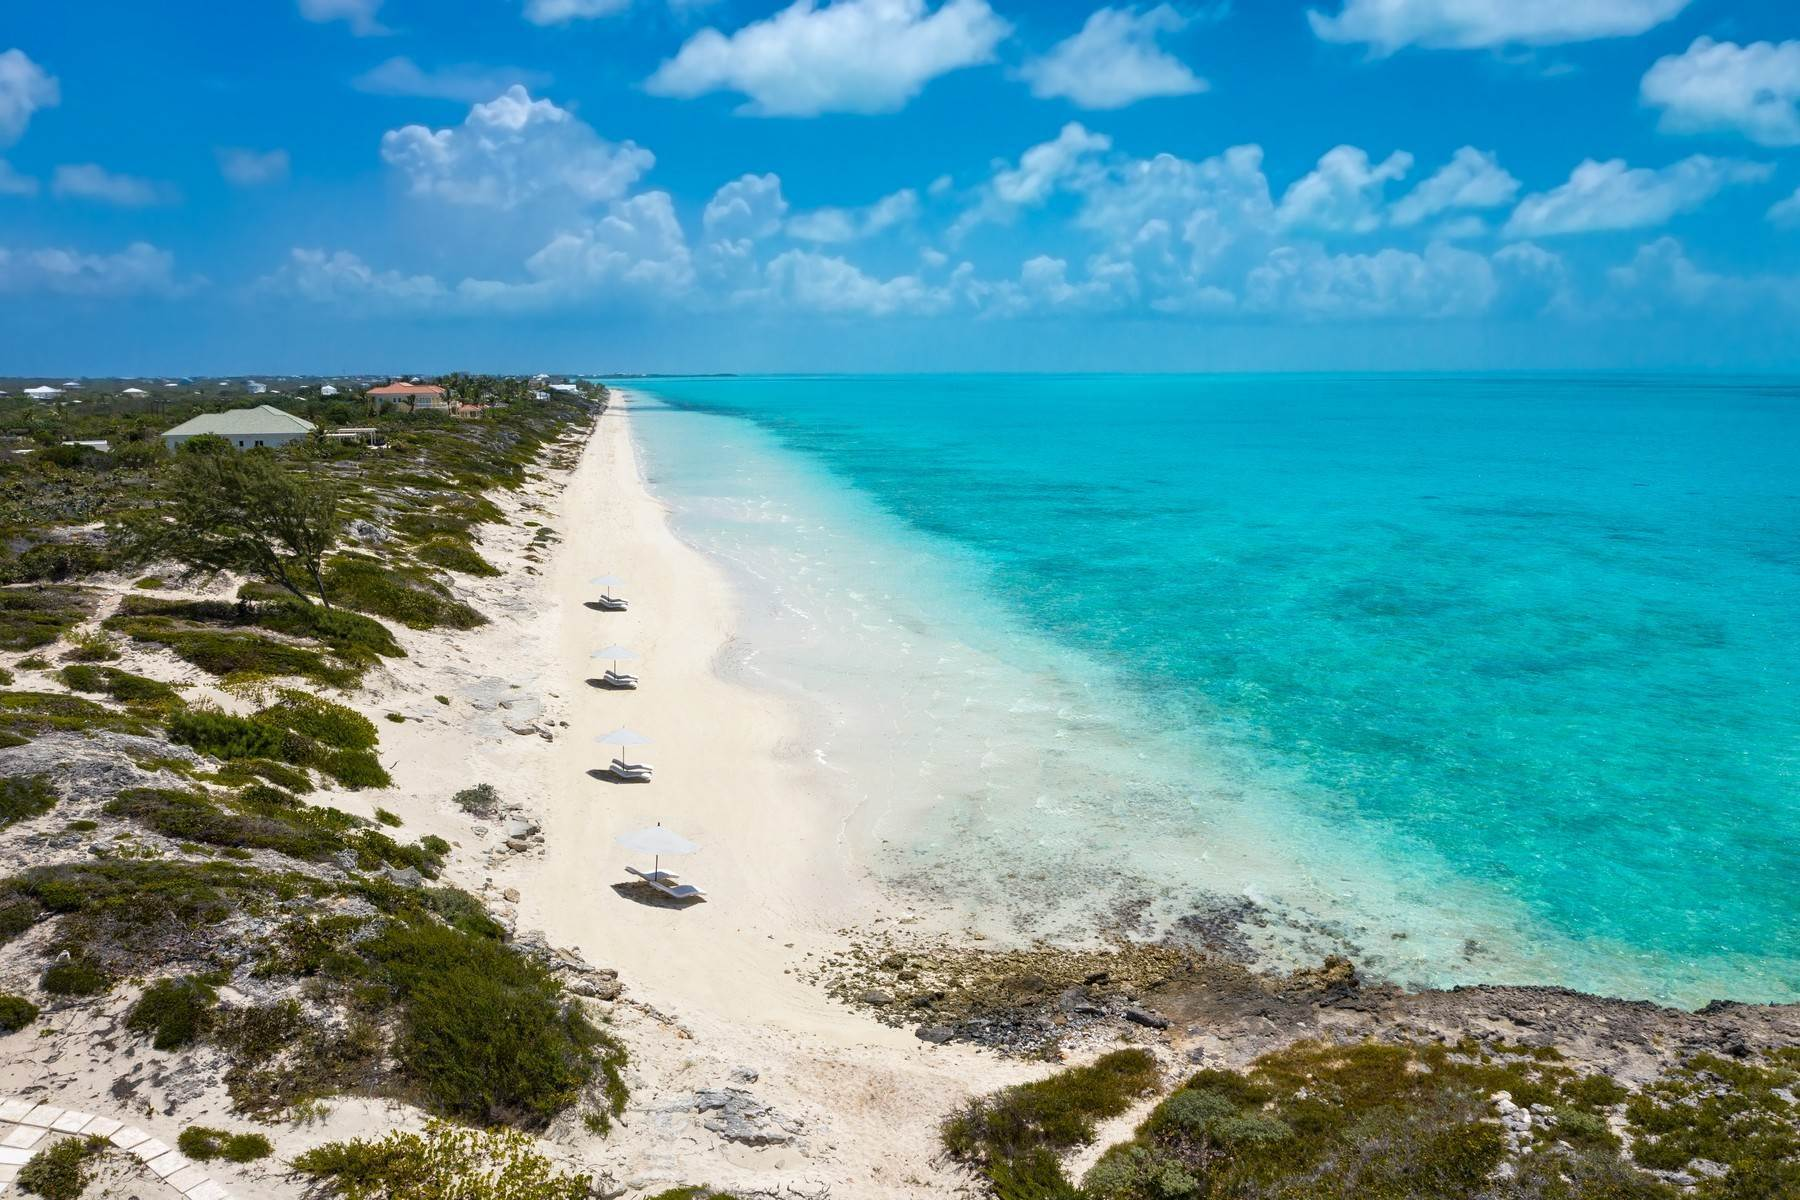 19. Single Family Homes for Sale at LONG BAY BEACH DUNE VILLA 1 AT SOUTH BANK - THE OCEAN ESTATE South Bank, Long Bay, Providenciales Turks And Caicos Islands